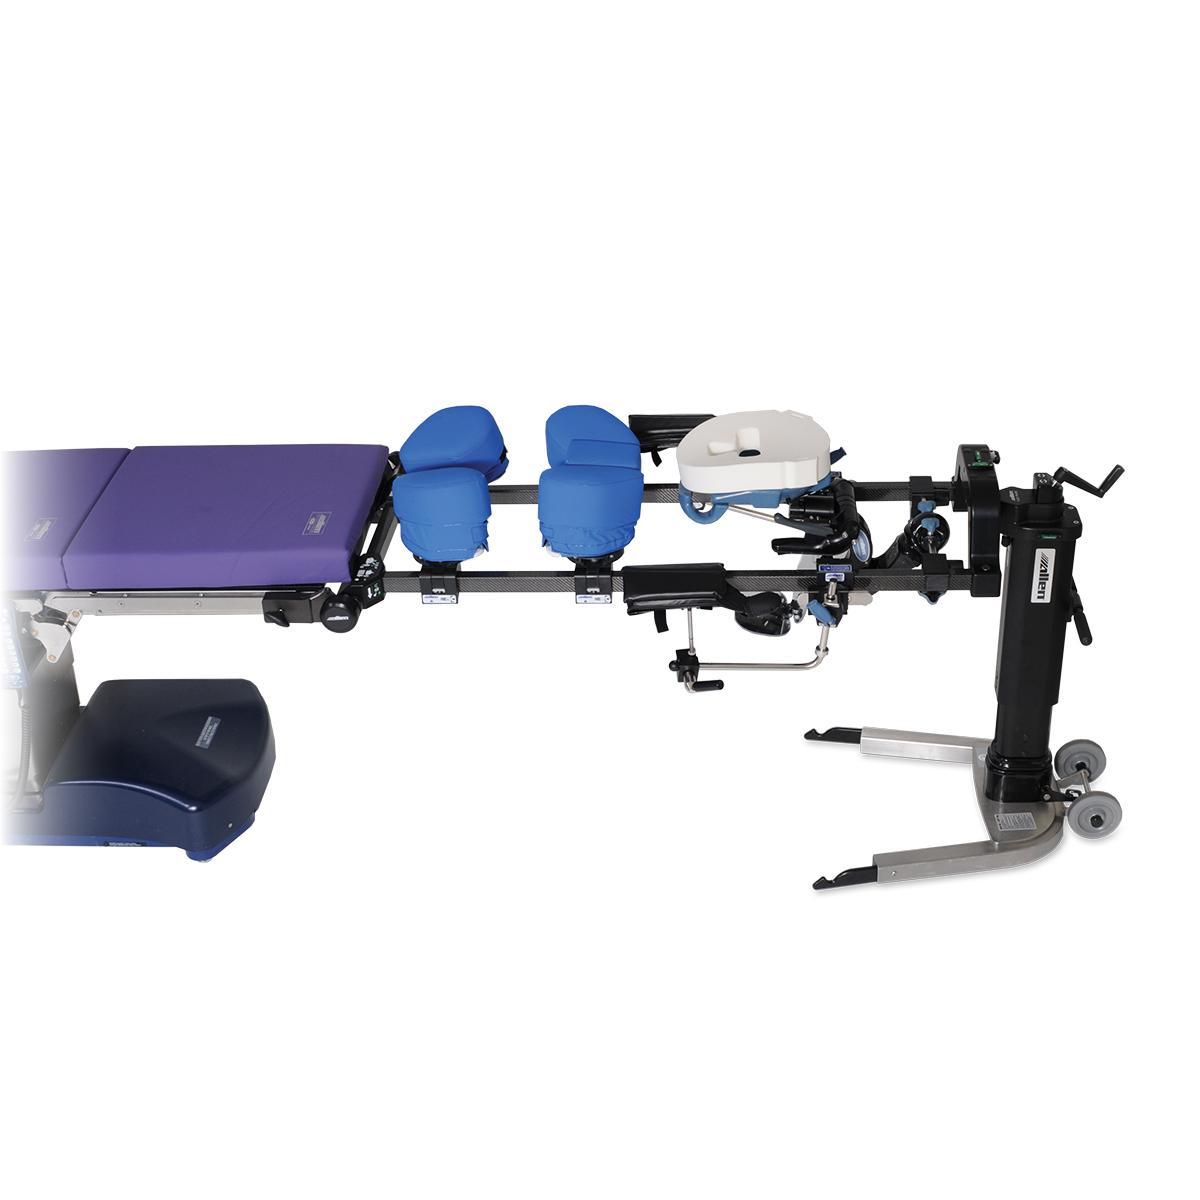 Allen Spine System close headrest view